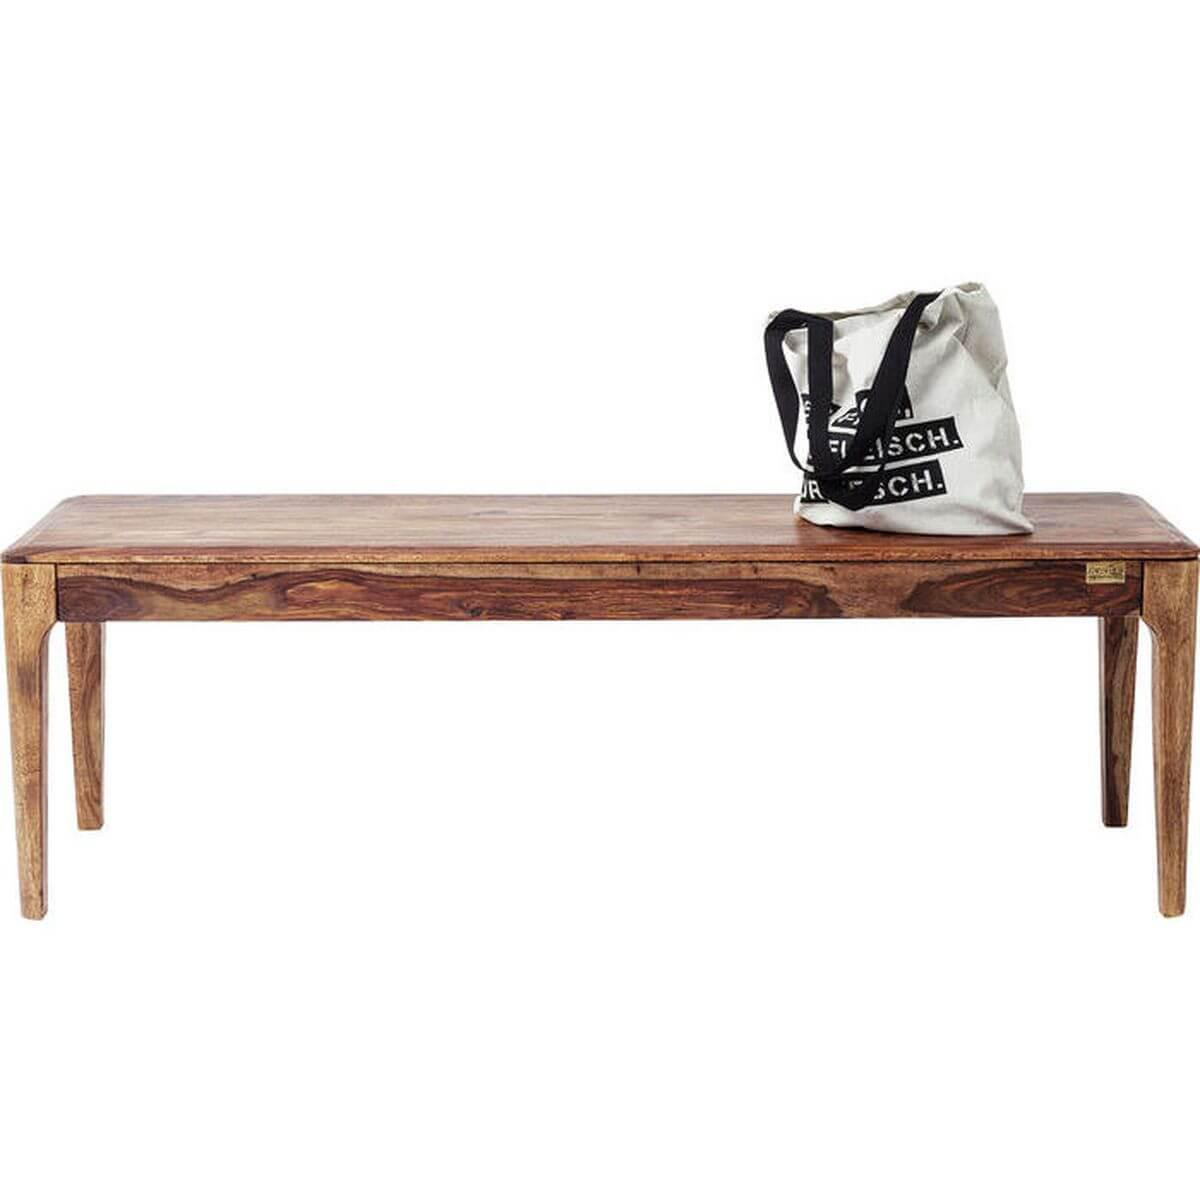 Banc Brooklyn Nature Kare Design 160cm